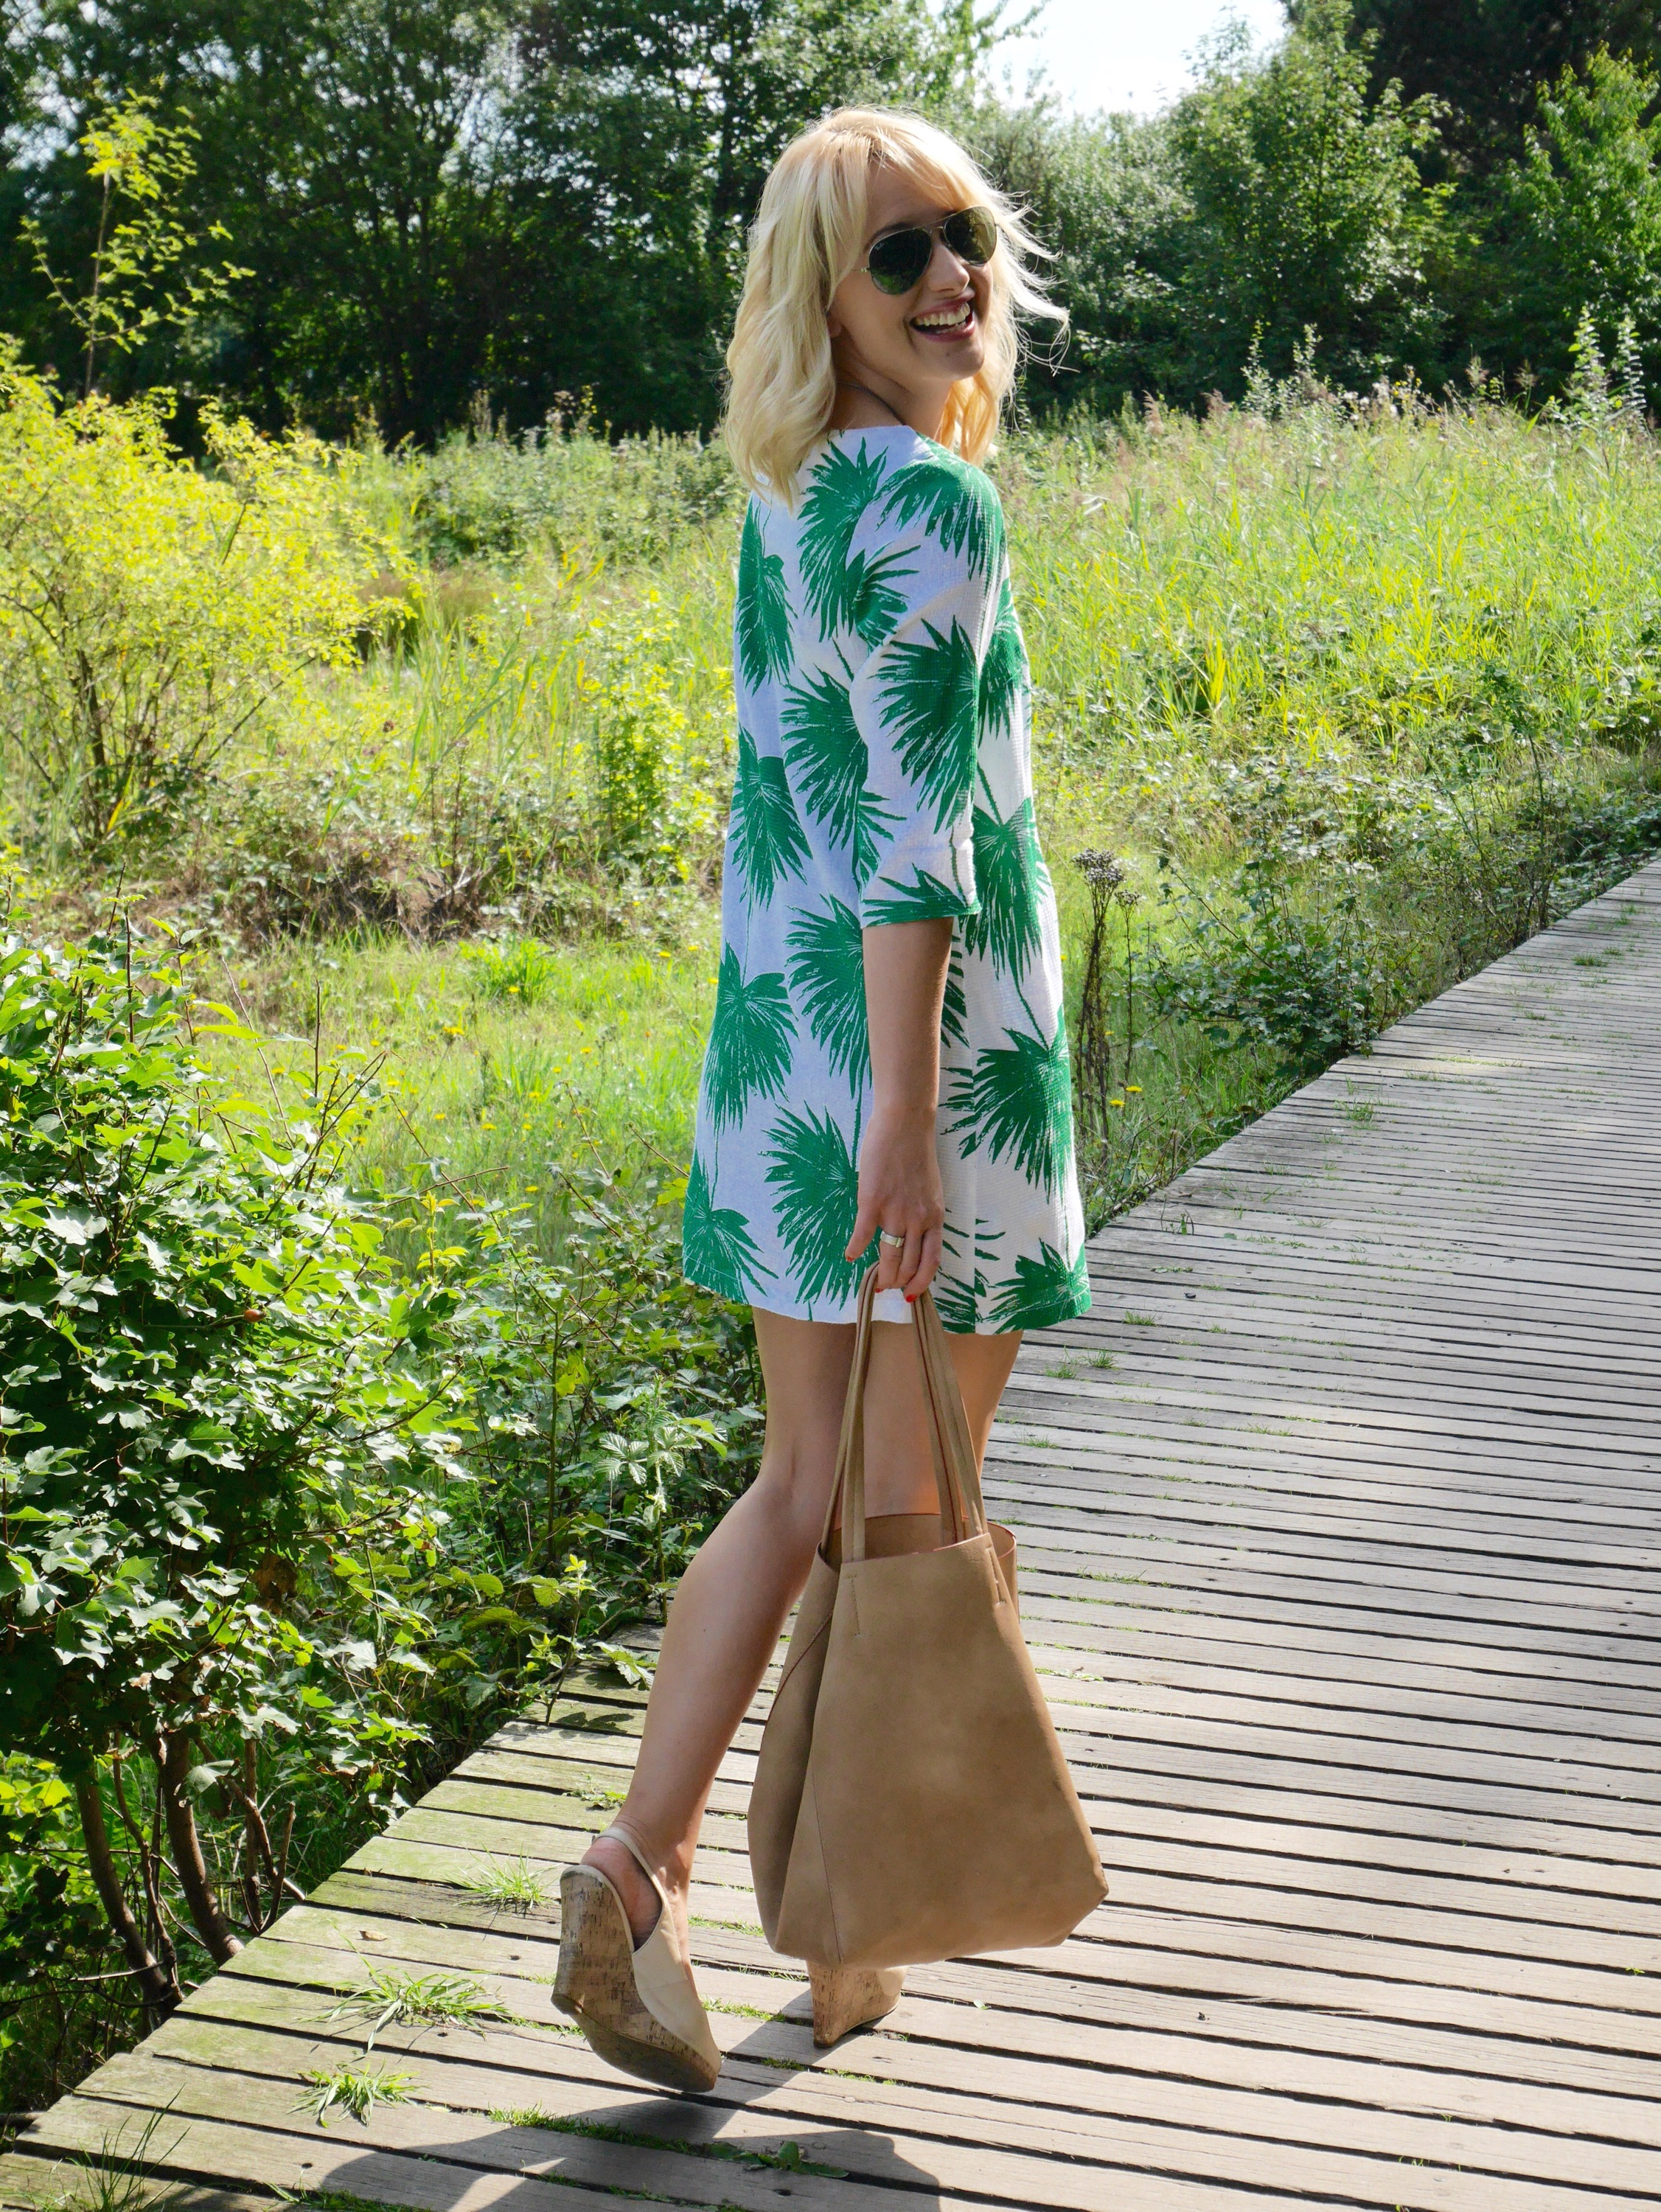 White Stuff tunic | cocomamastyle | outfit of the day